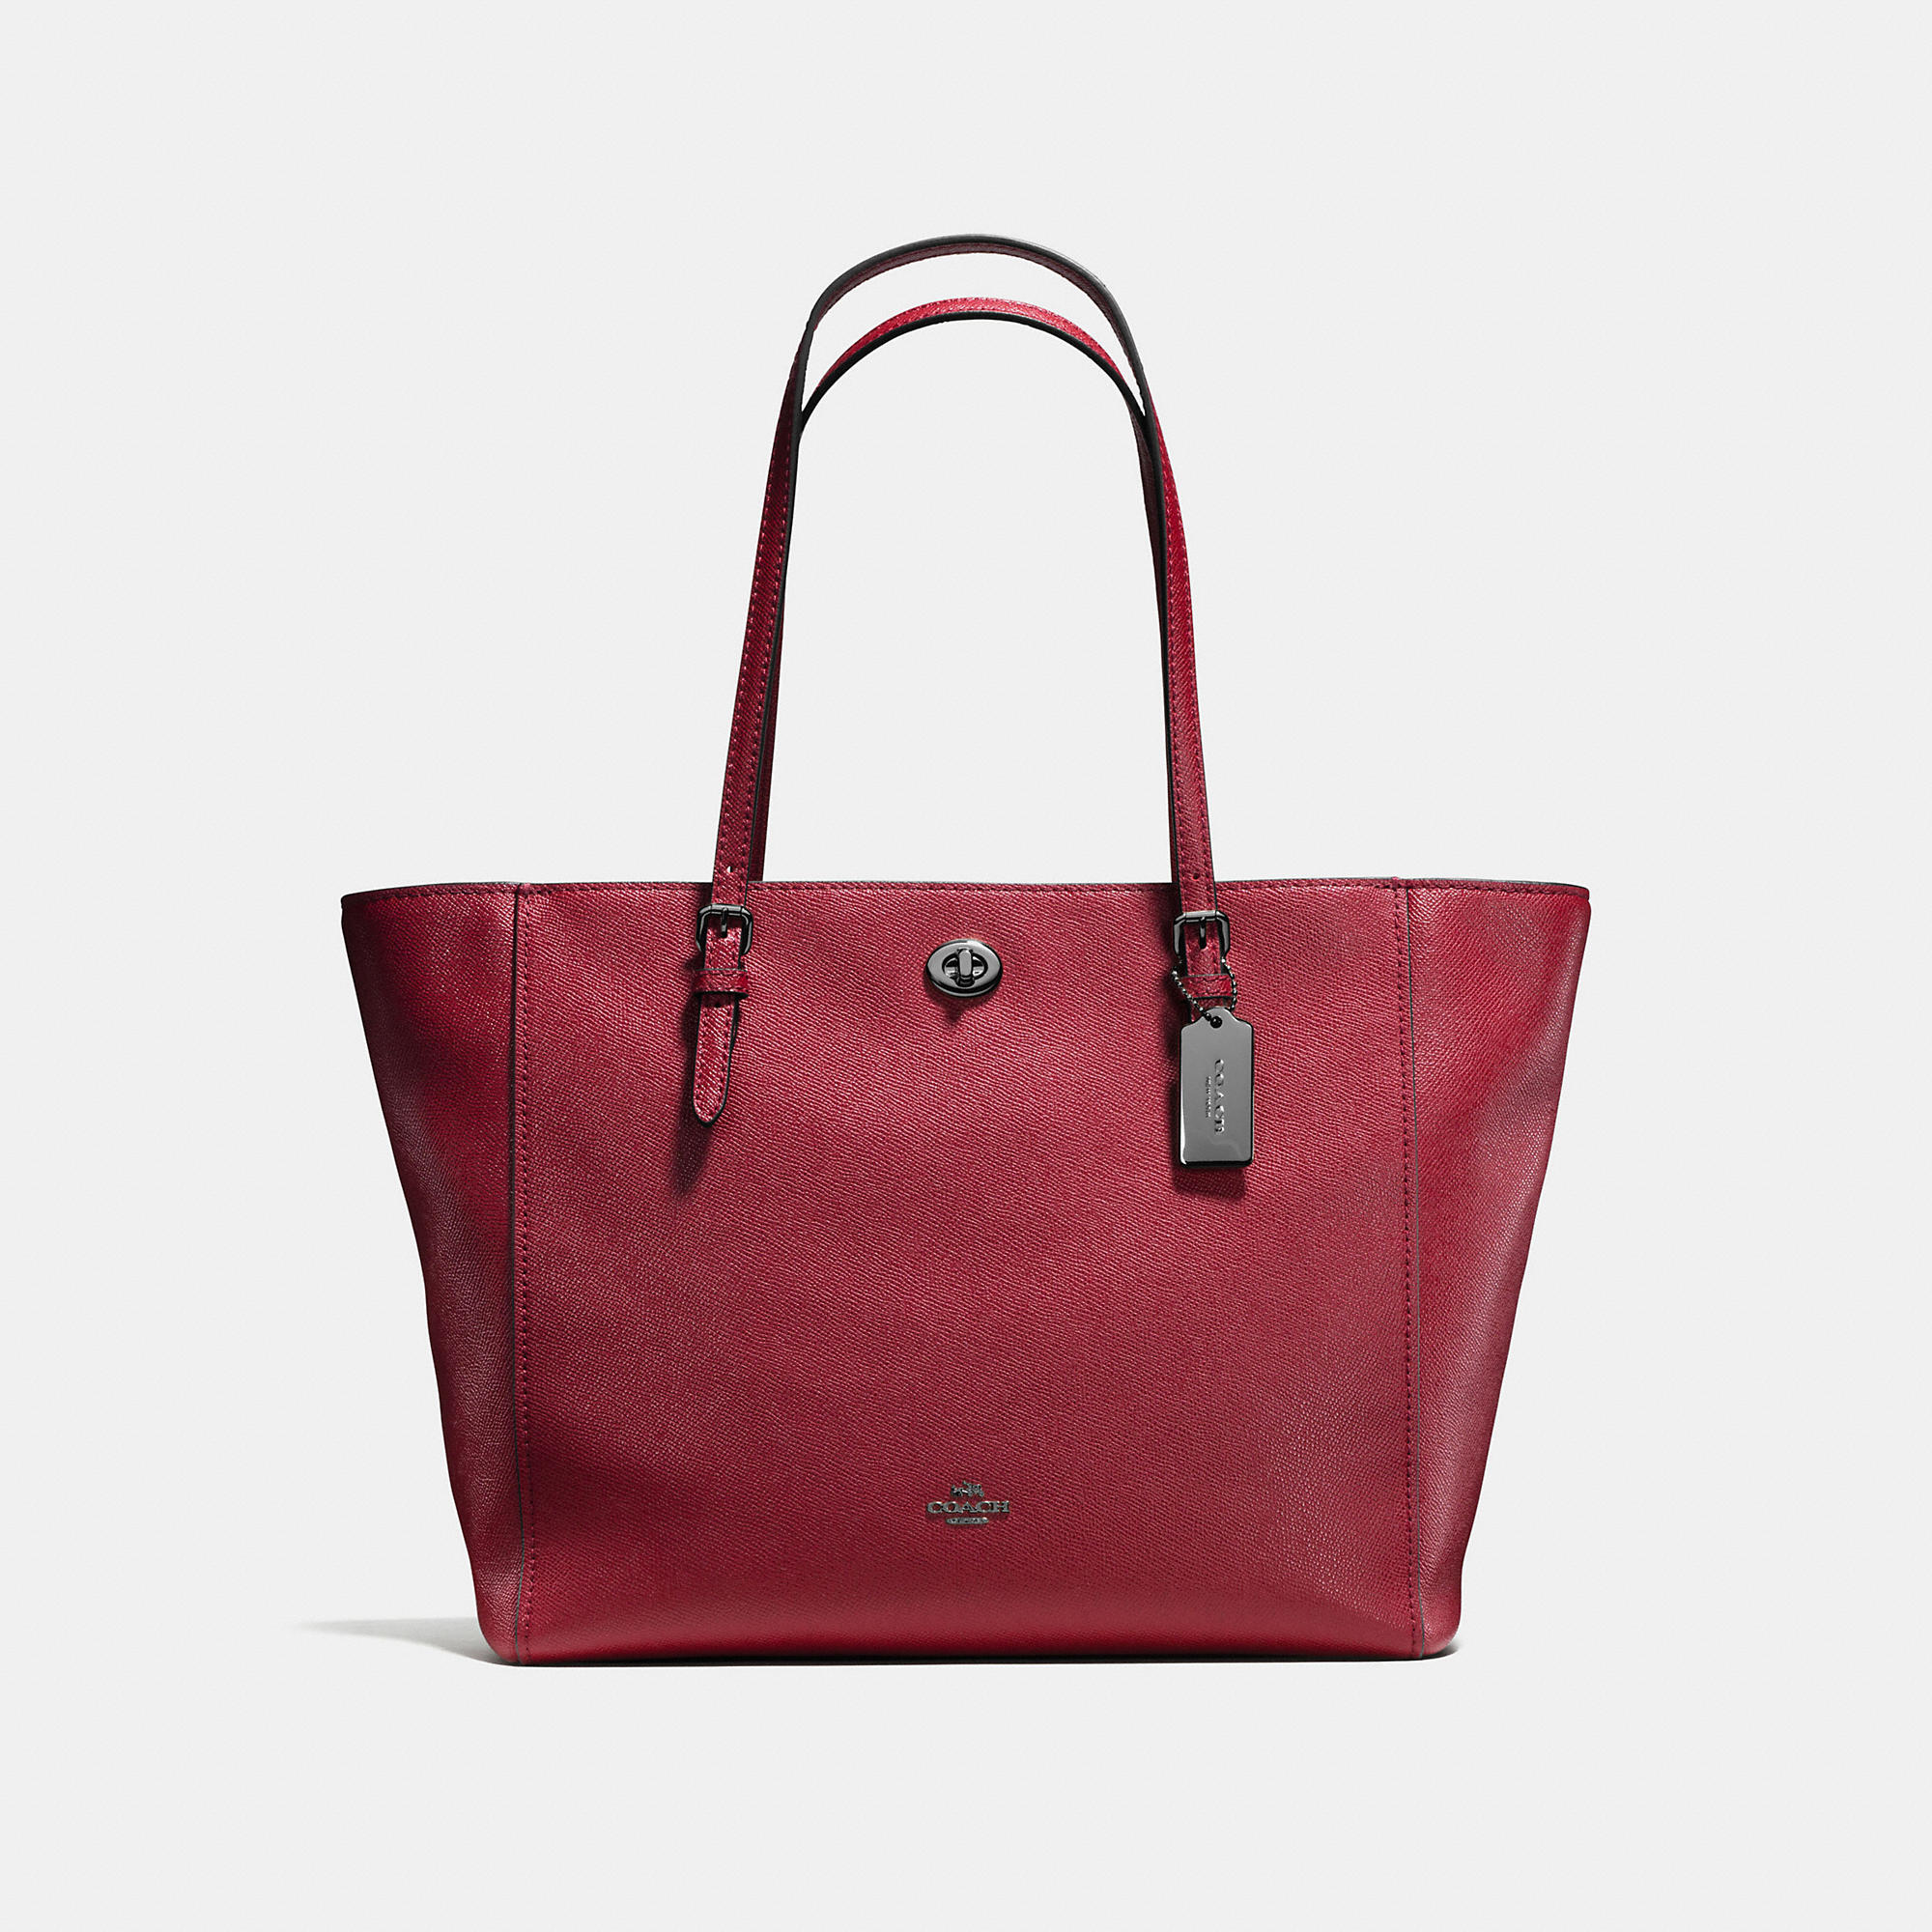 Coach Turnlock Tote